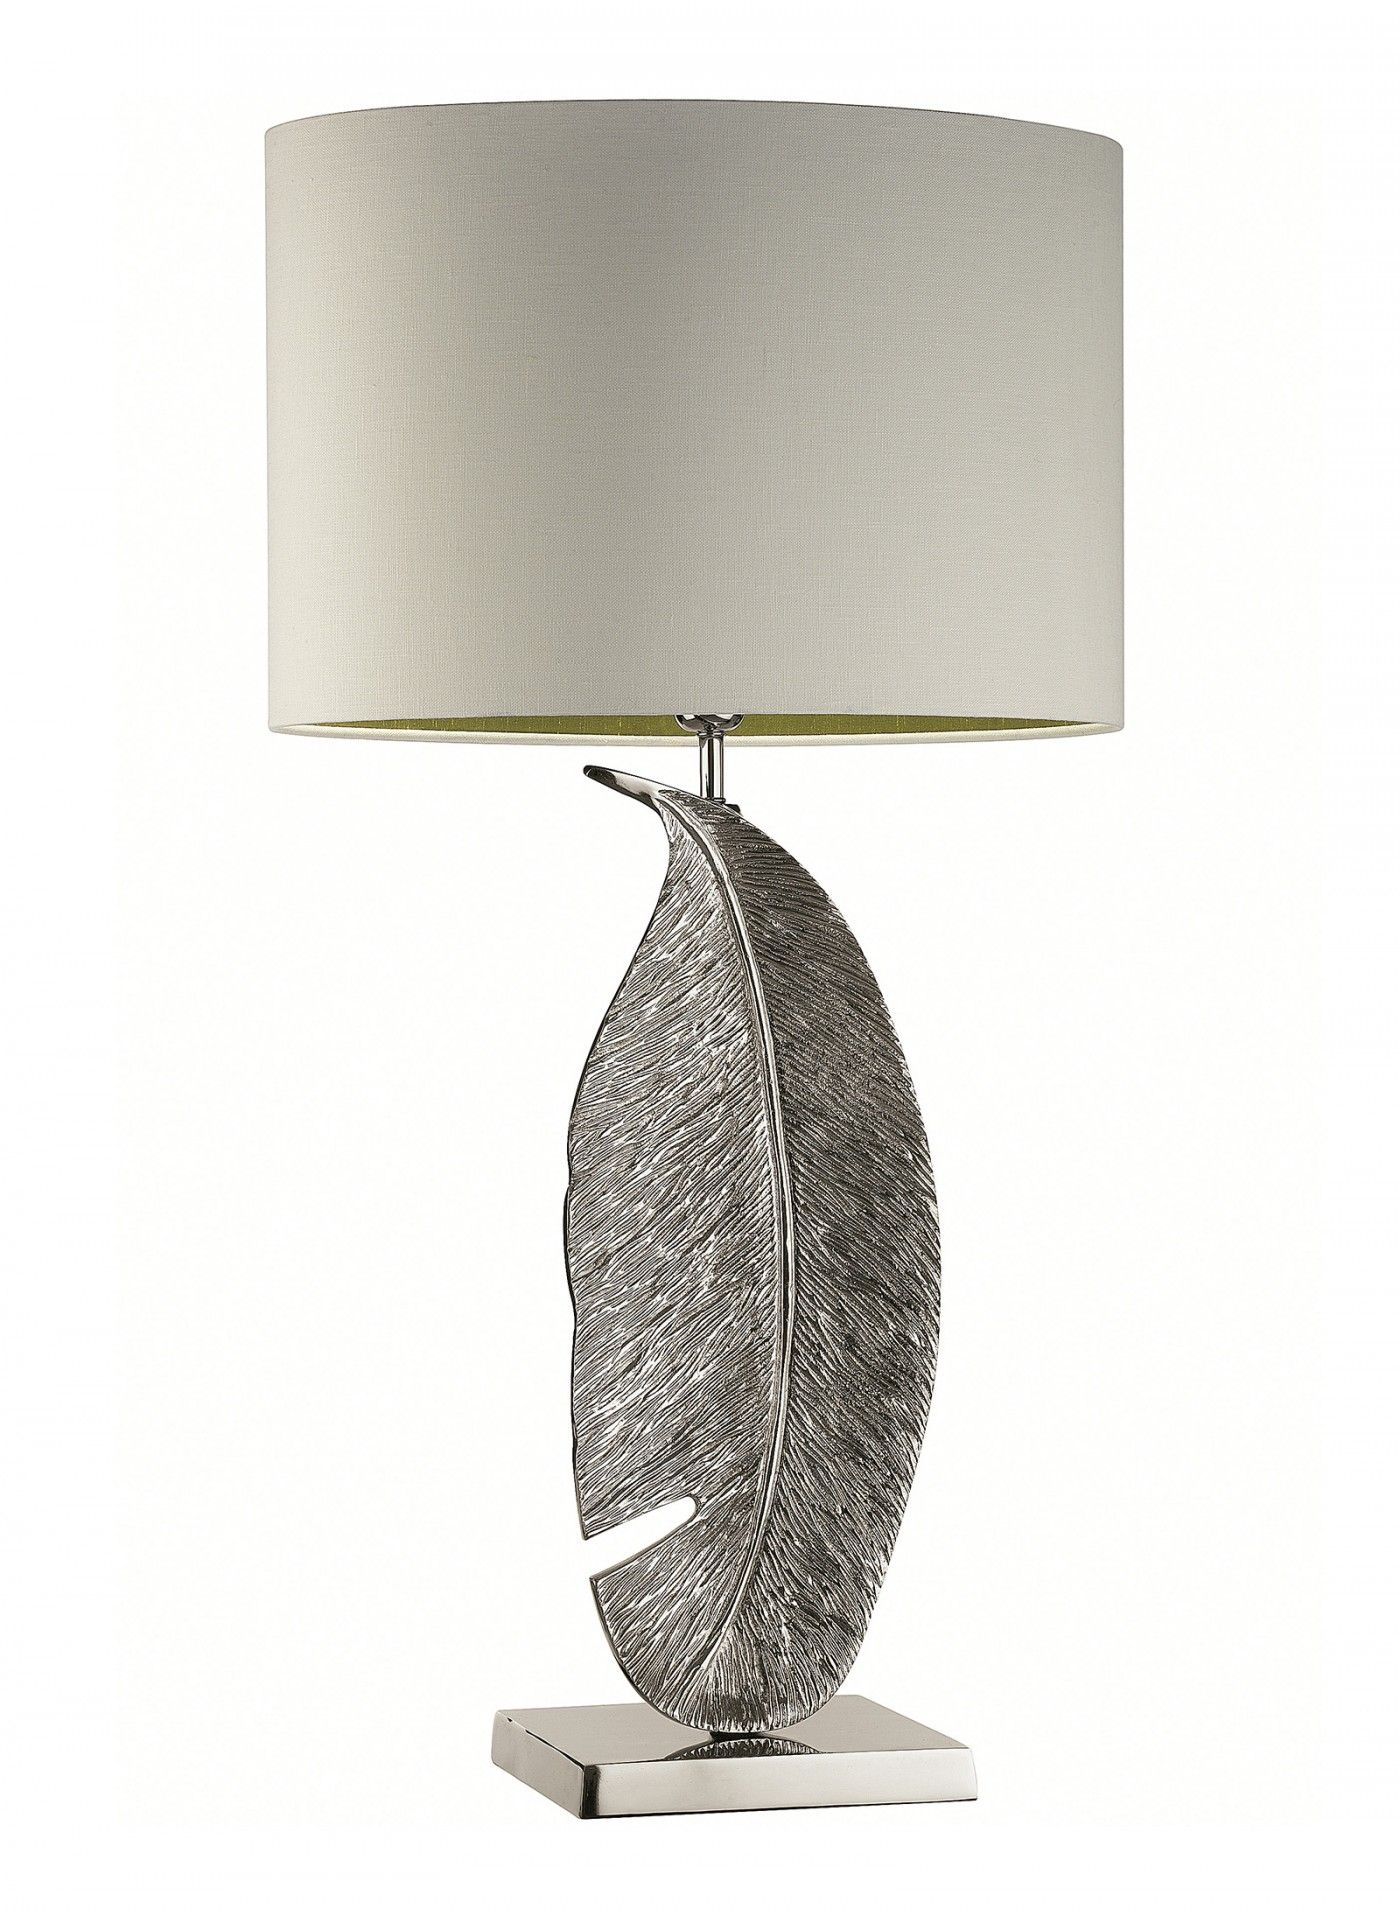 Leaf Nickel Large Table Lamp Heathfield Co Large Table Lamps Table Lamp Lighting Lamp